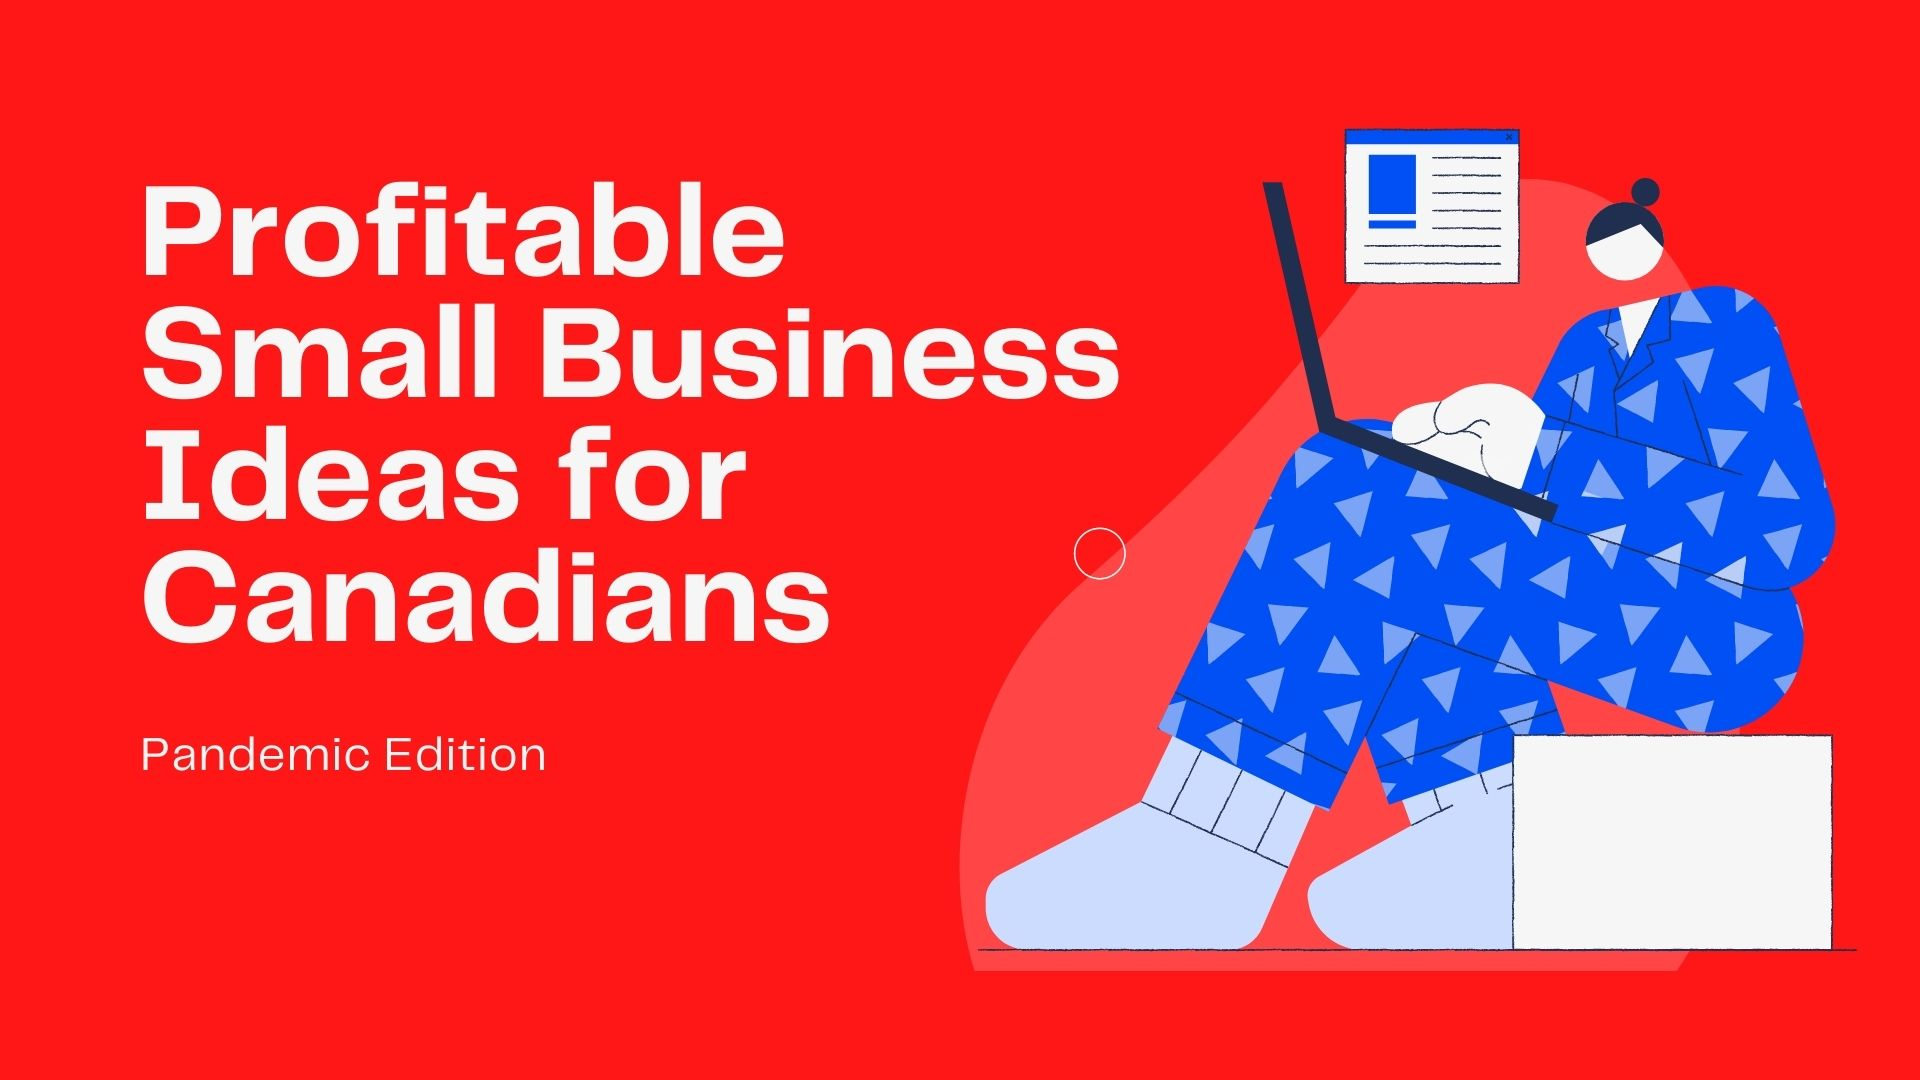 Profitable Small Business Ideas for Canadians